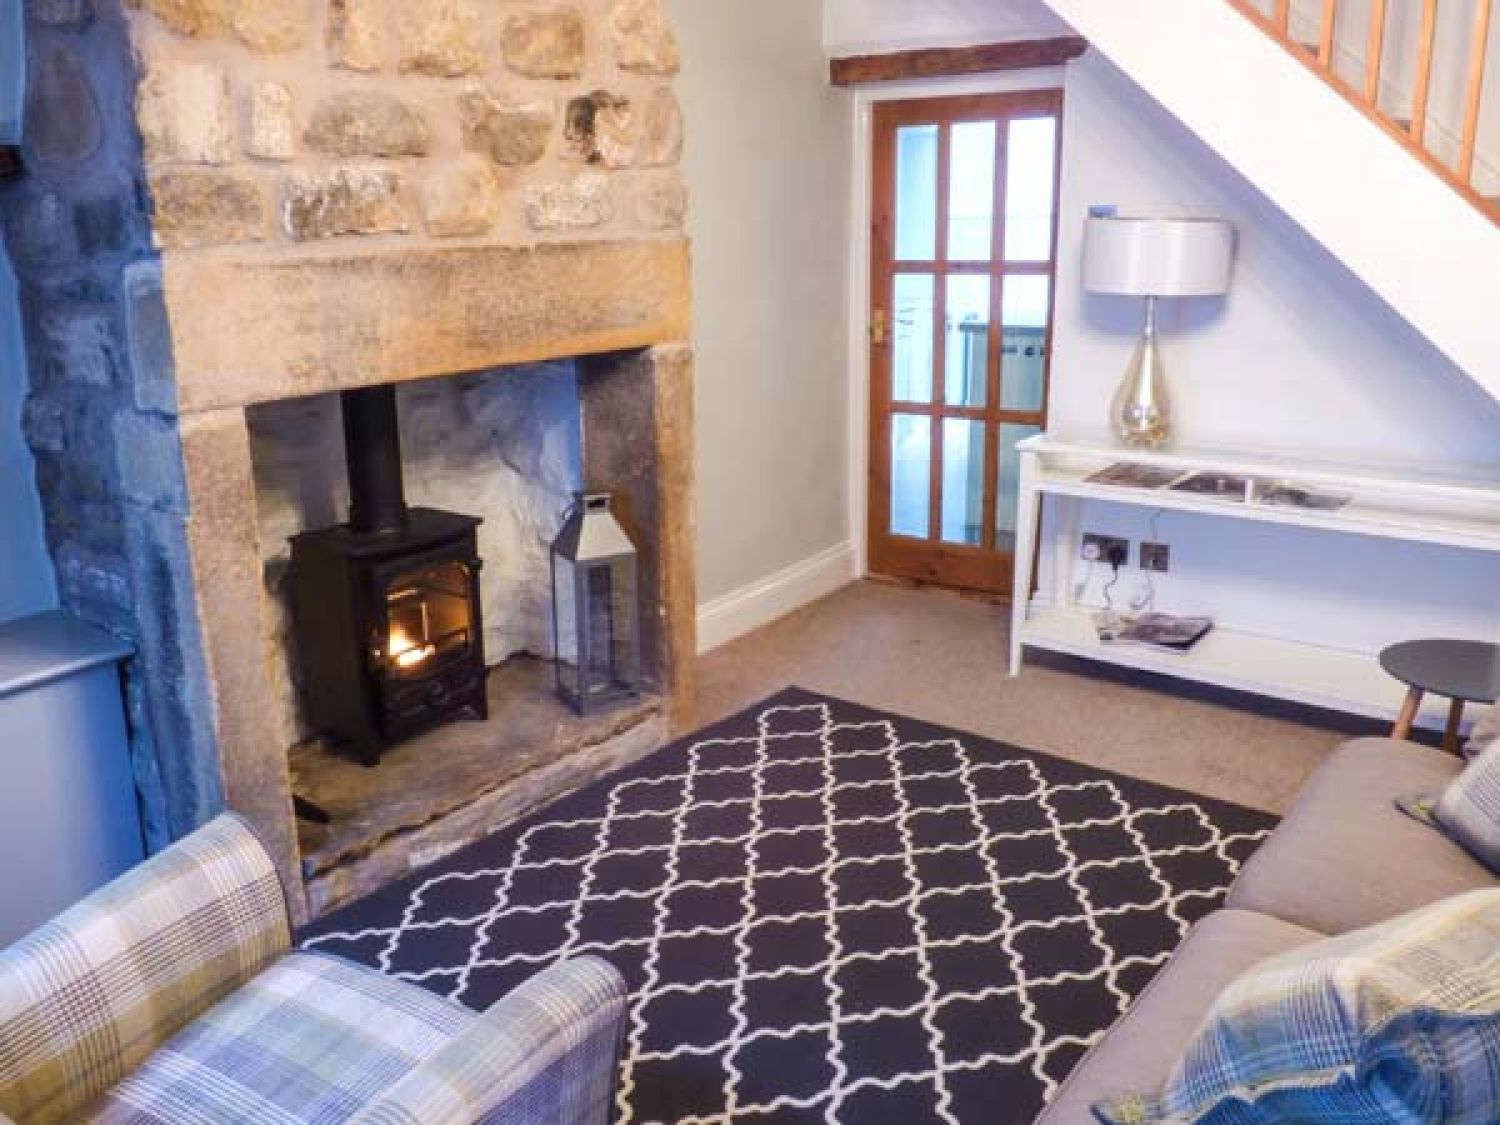 88 Regent Street - Yorkshire Dales - 935618 - photo 1